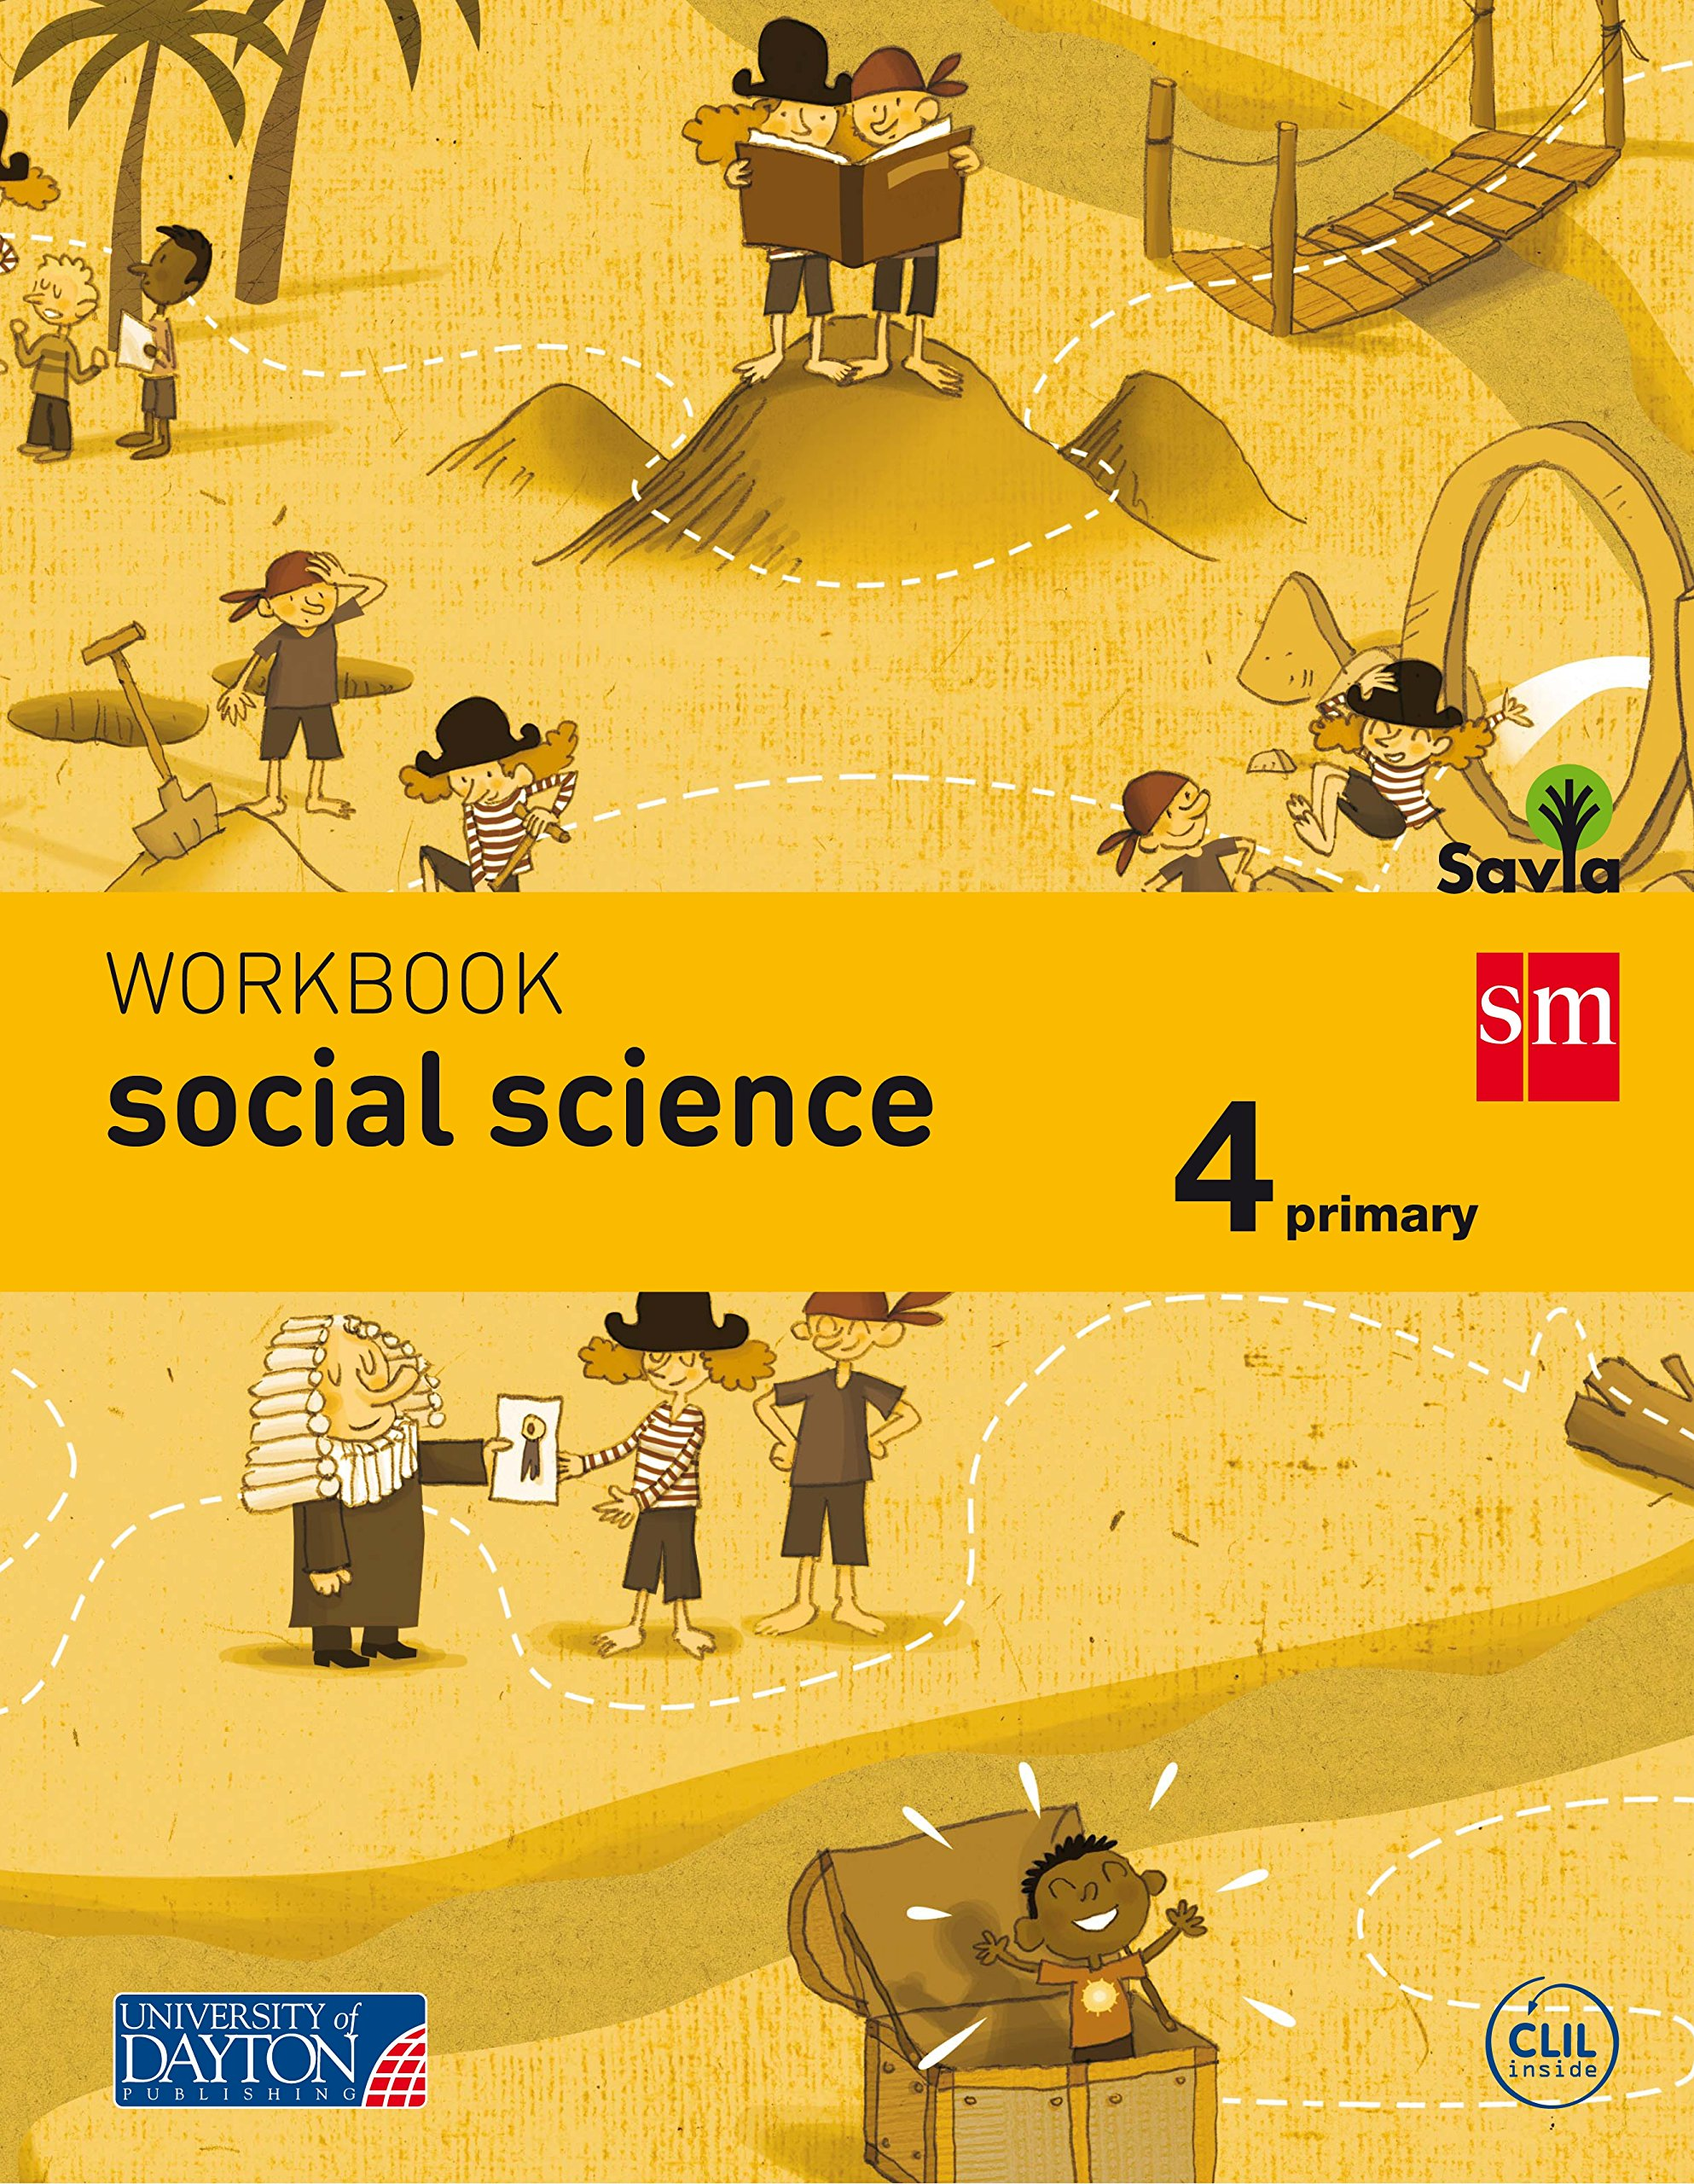 Social science. 4 Primary. Savia. Workbook - 9788415743767: Amazon.es: Mc Guinness, Úna, Brown, Chloe, Pinillos Visscher, Cristina, Gonzalez Fairgrieve , Joanne, Quincy, Cristina, Archivo de Ediciones SM,, Muñiz López, Jacobo, El Bello